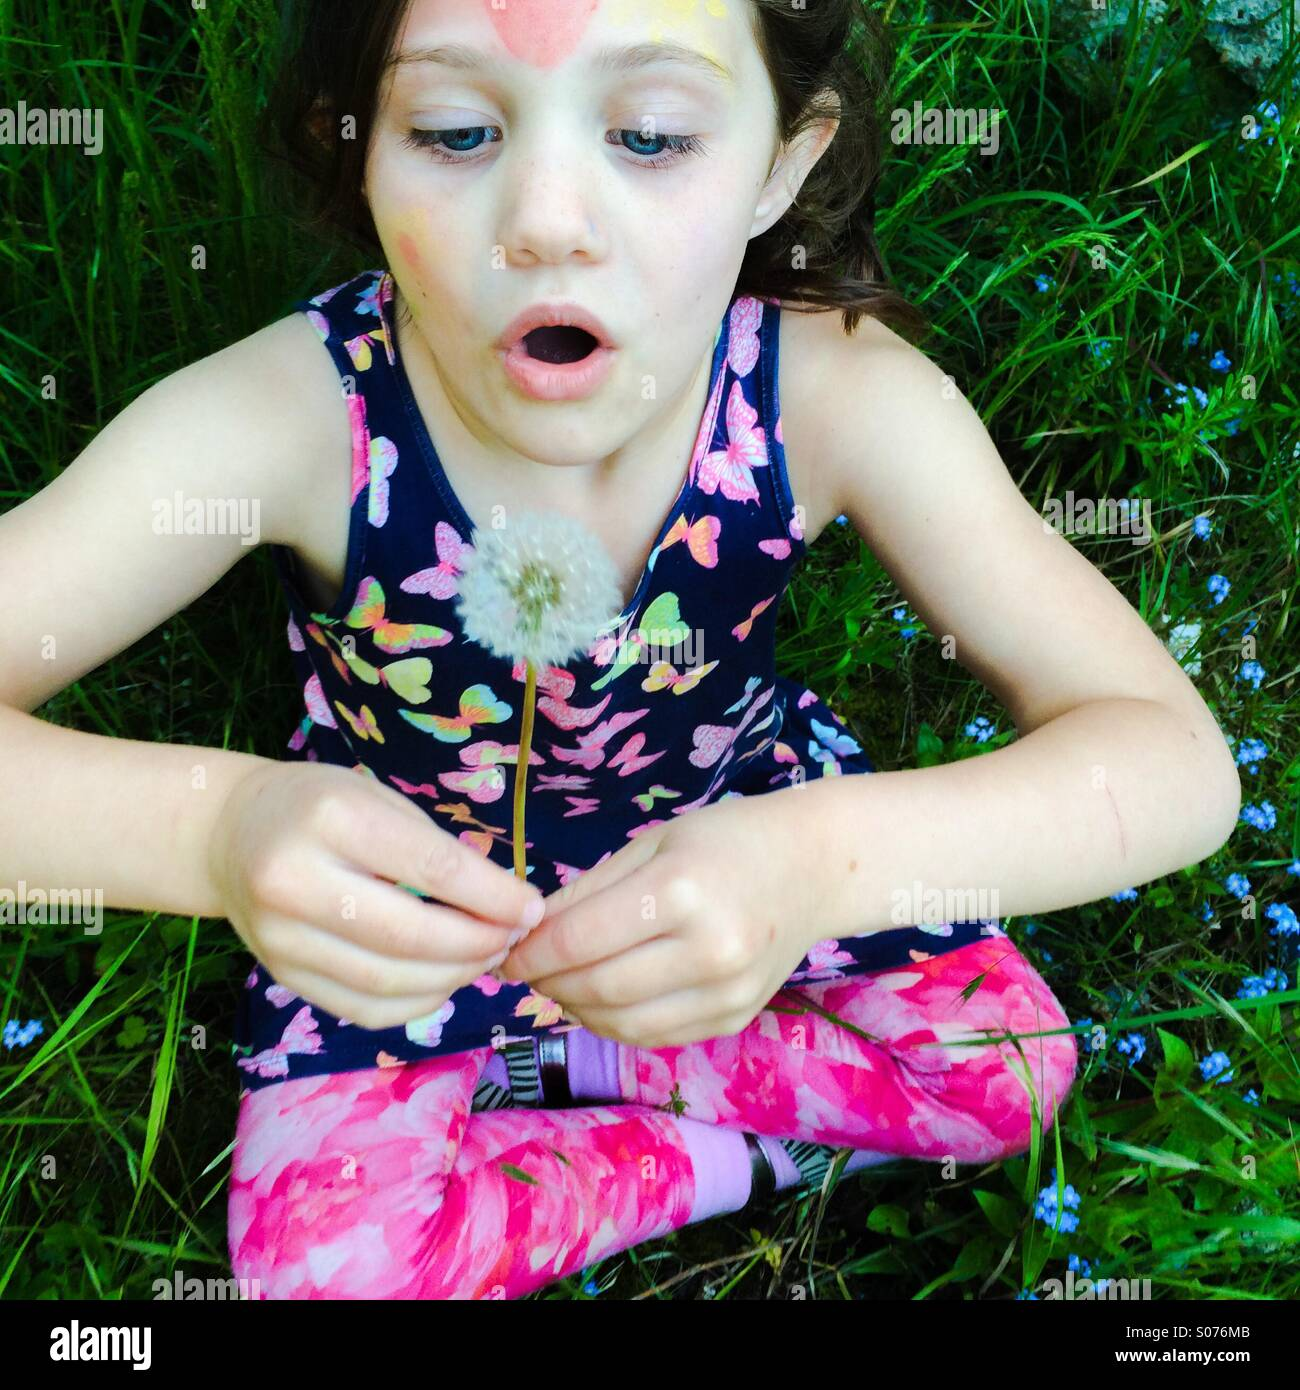 Five year old girl blowing dandelion - Stock Image